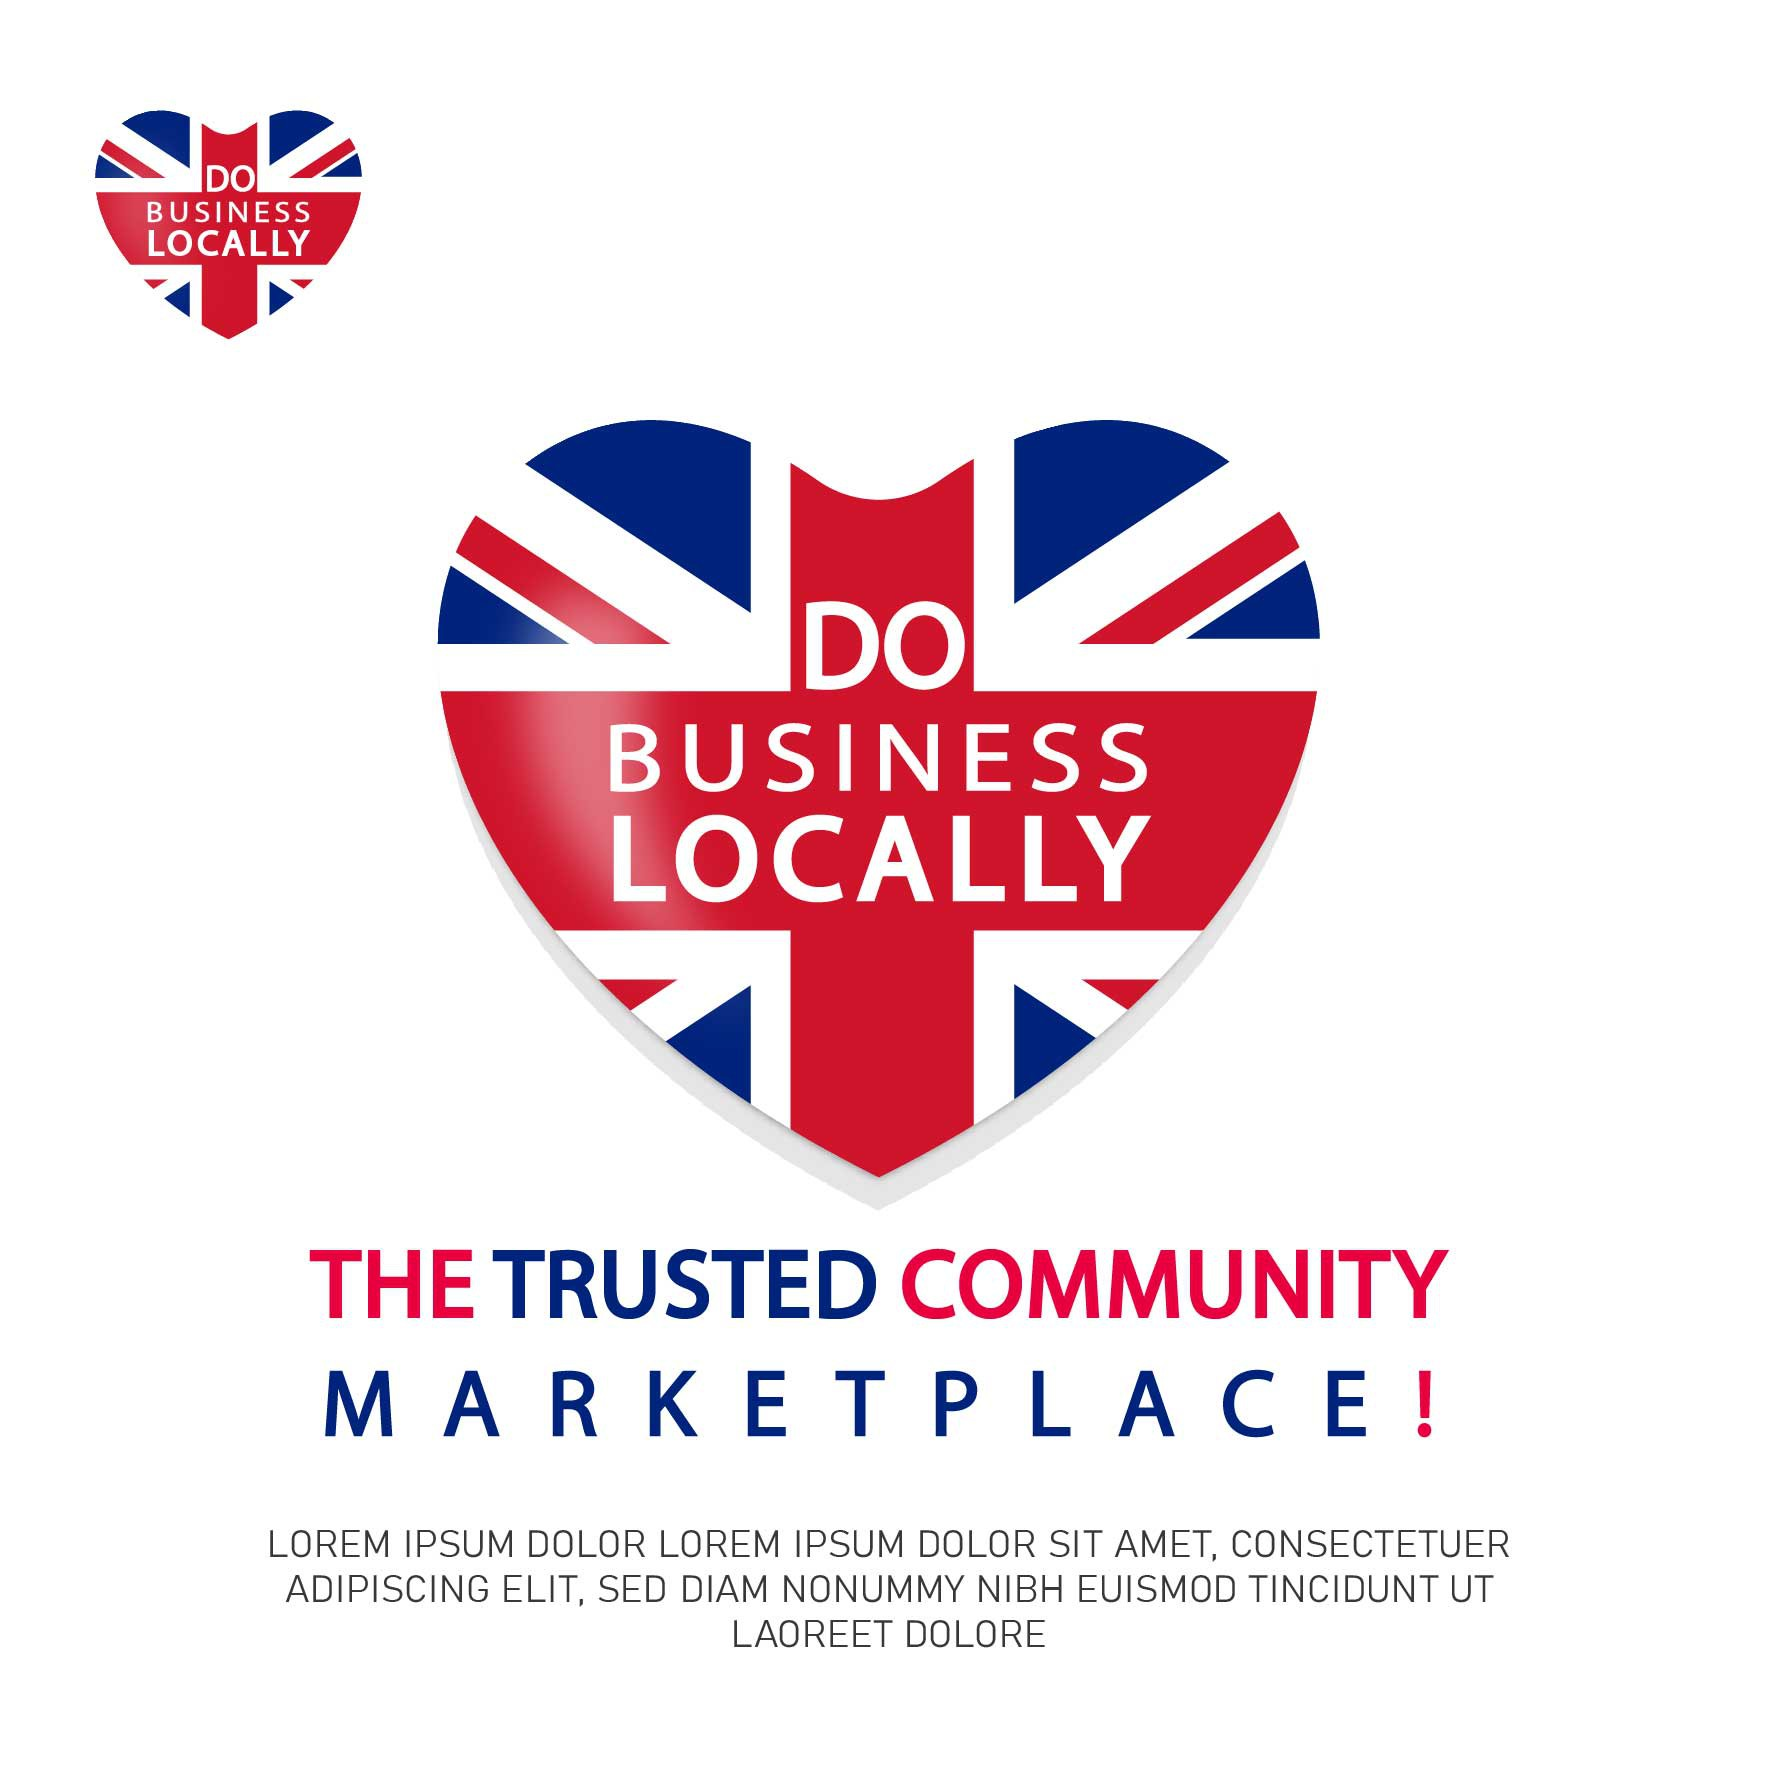 Now is the time to promote & do businesses locally, let's help the local community to recover!